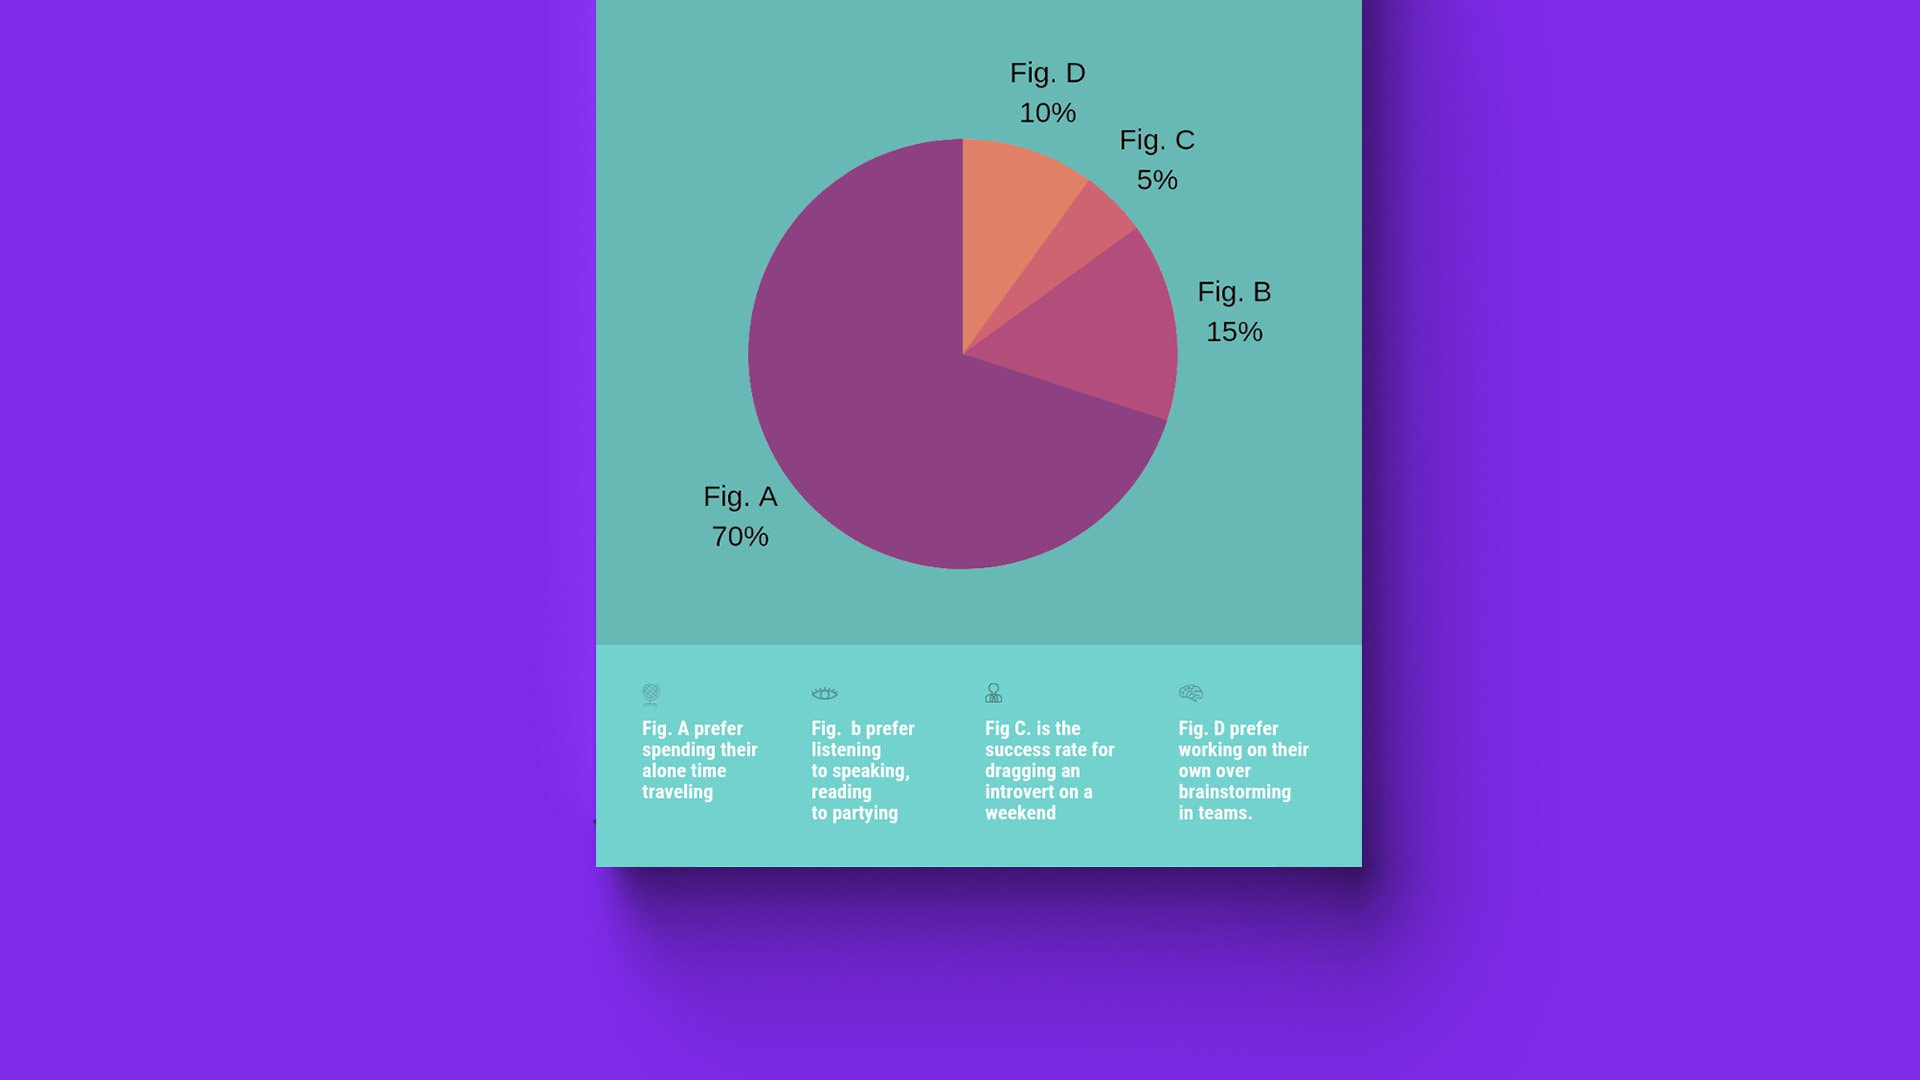 How to create pie charts